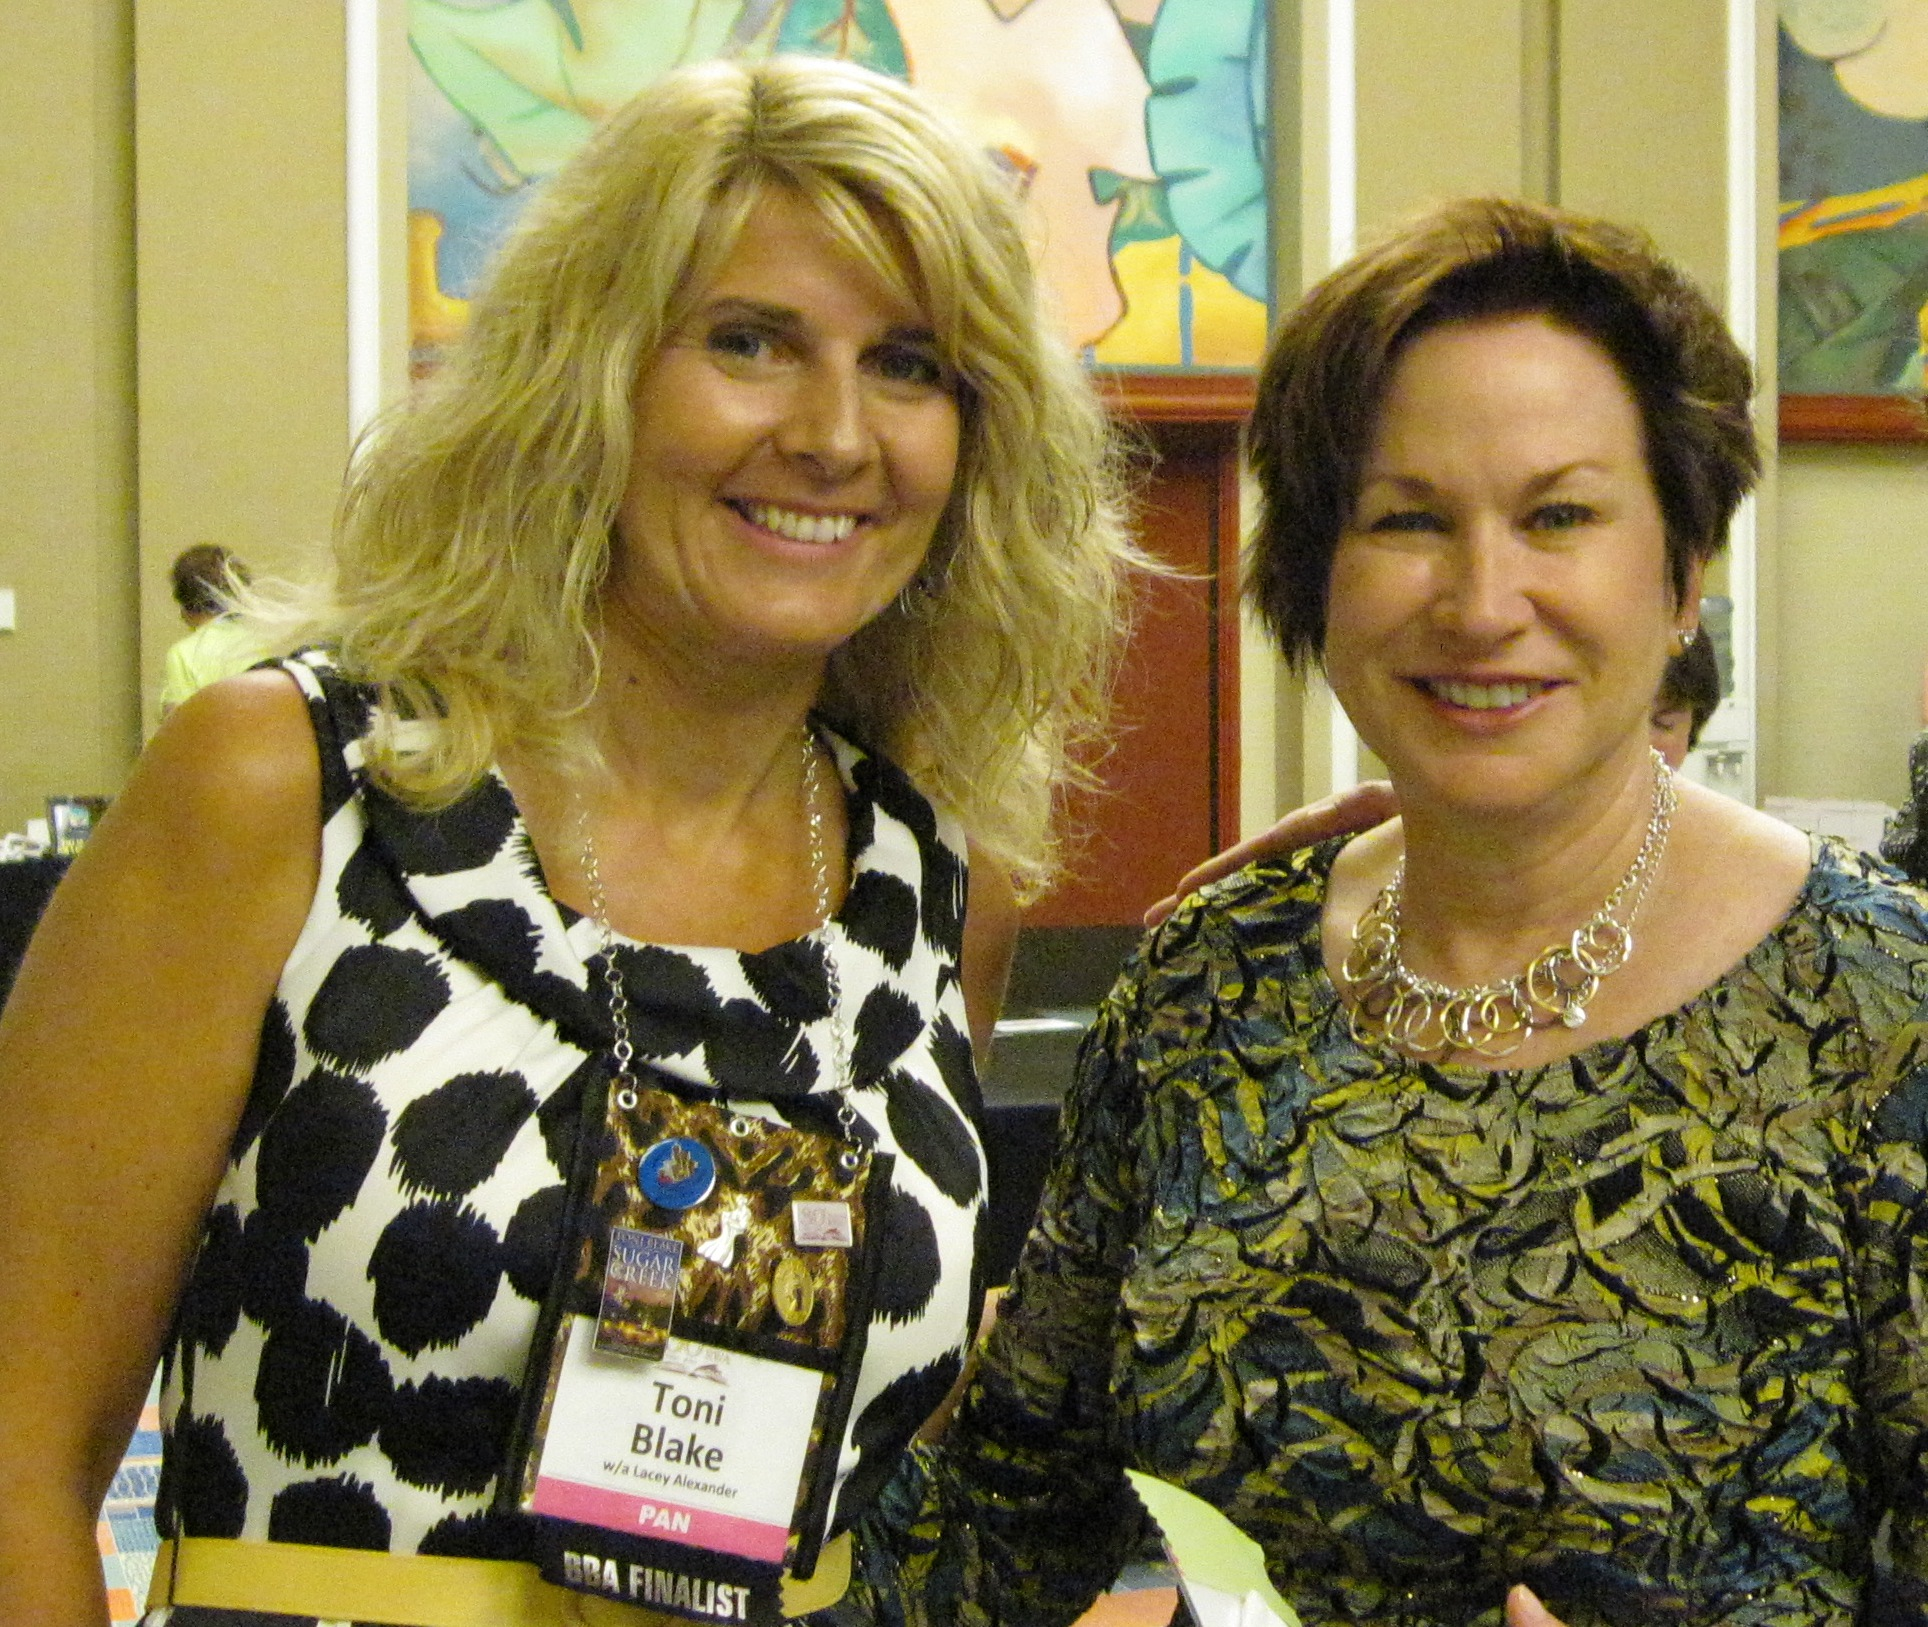 With author friend Christina Dodd.